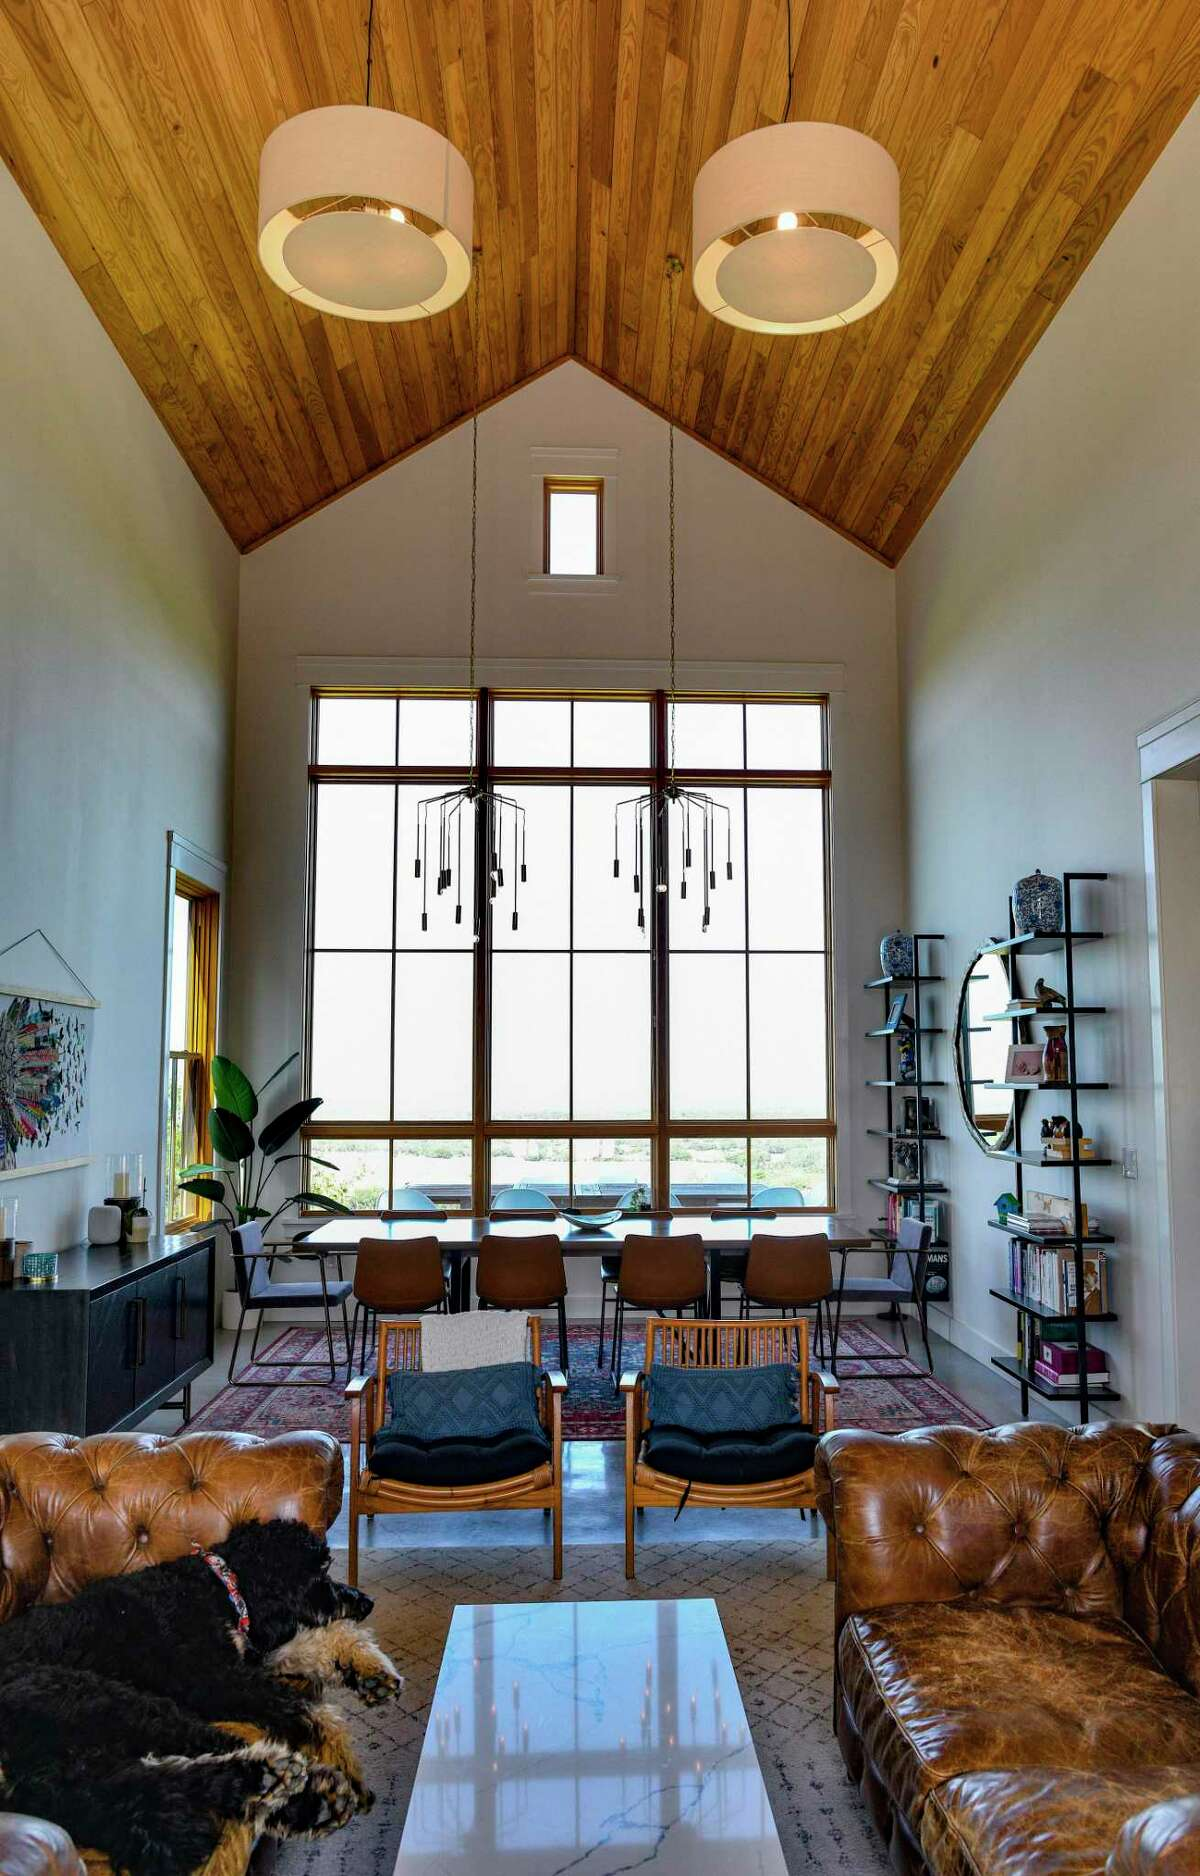 The most dramatic space in the home of Carey and Regan Meador at Southold Farm + Cellar near Fredericksburg is this 40-foot living/dining room with a 23-foot high cathedral ceiling.